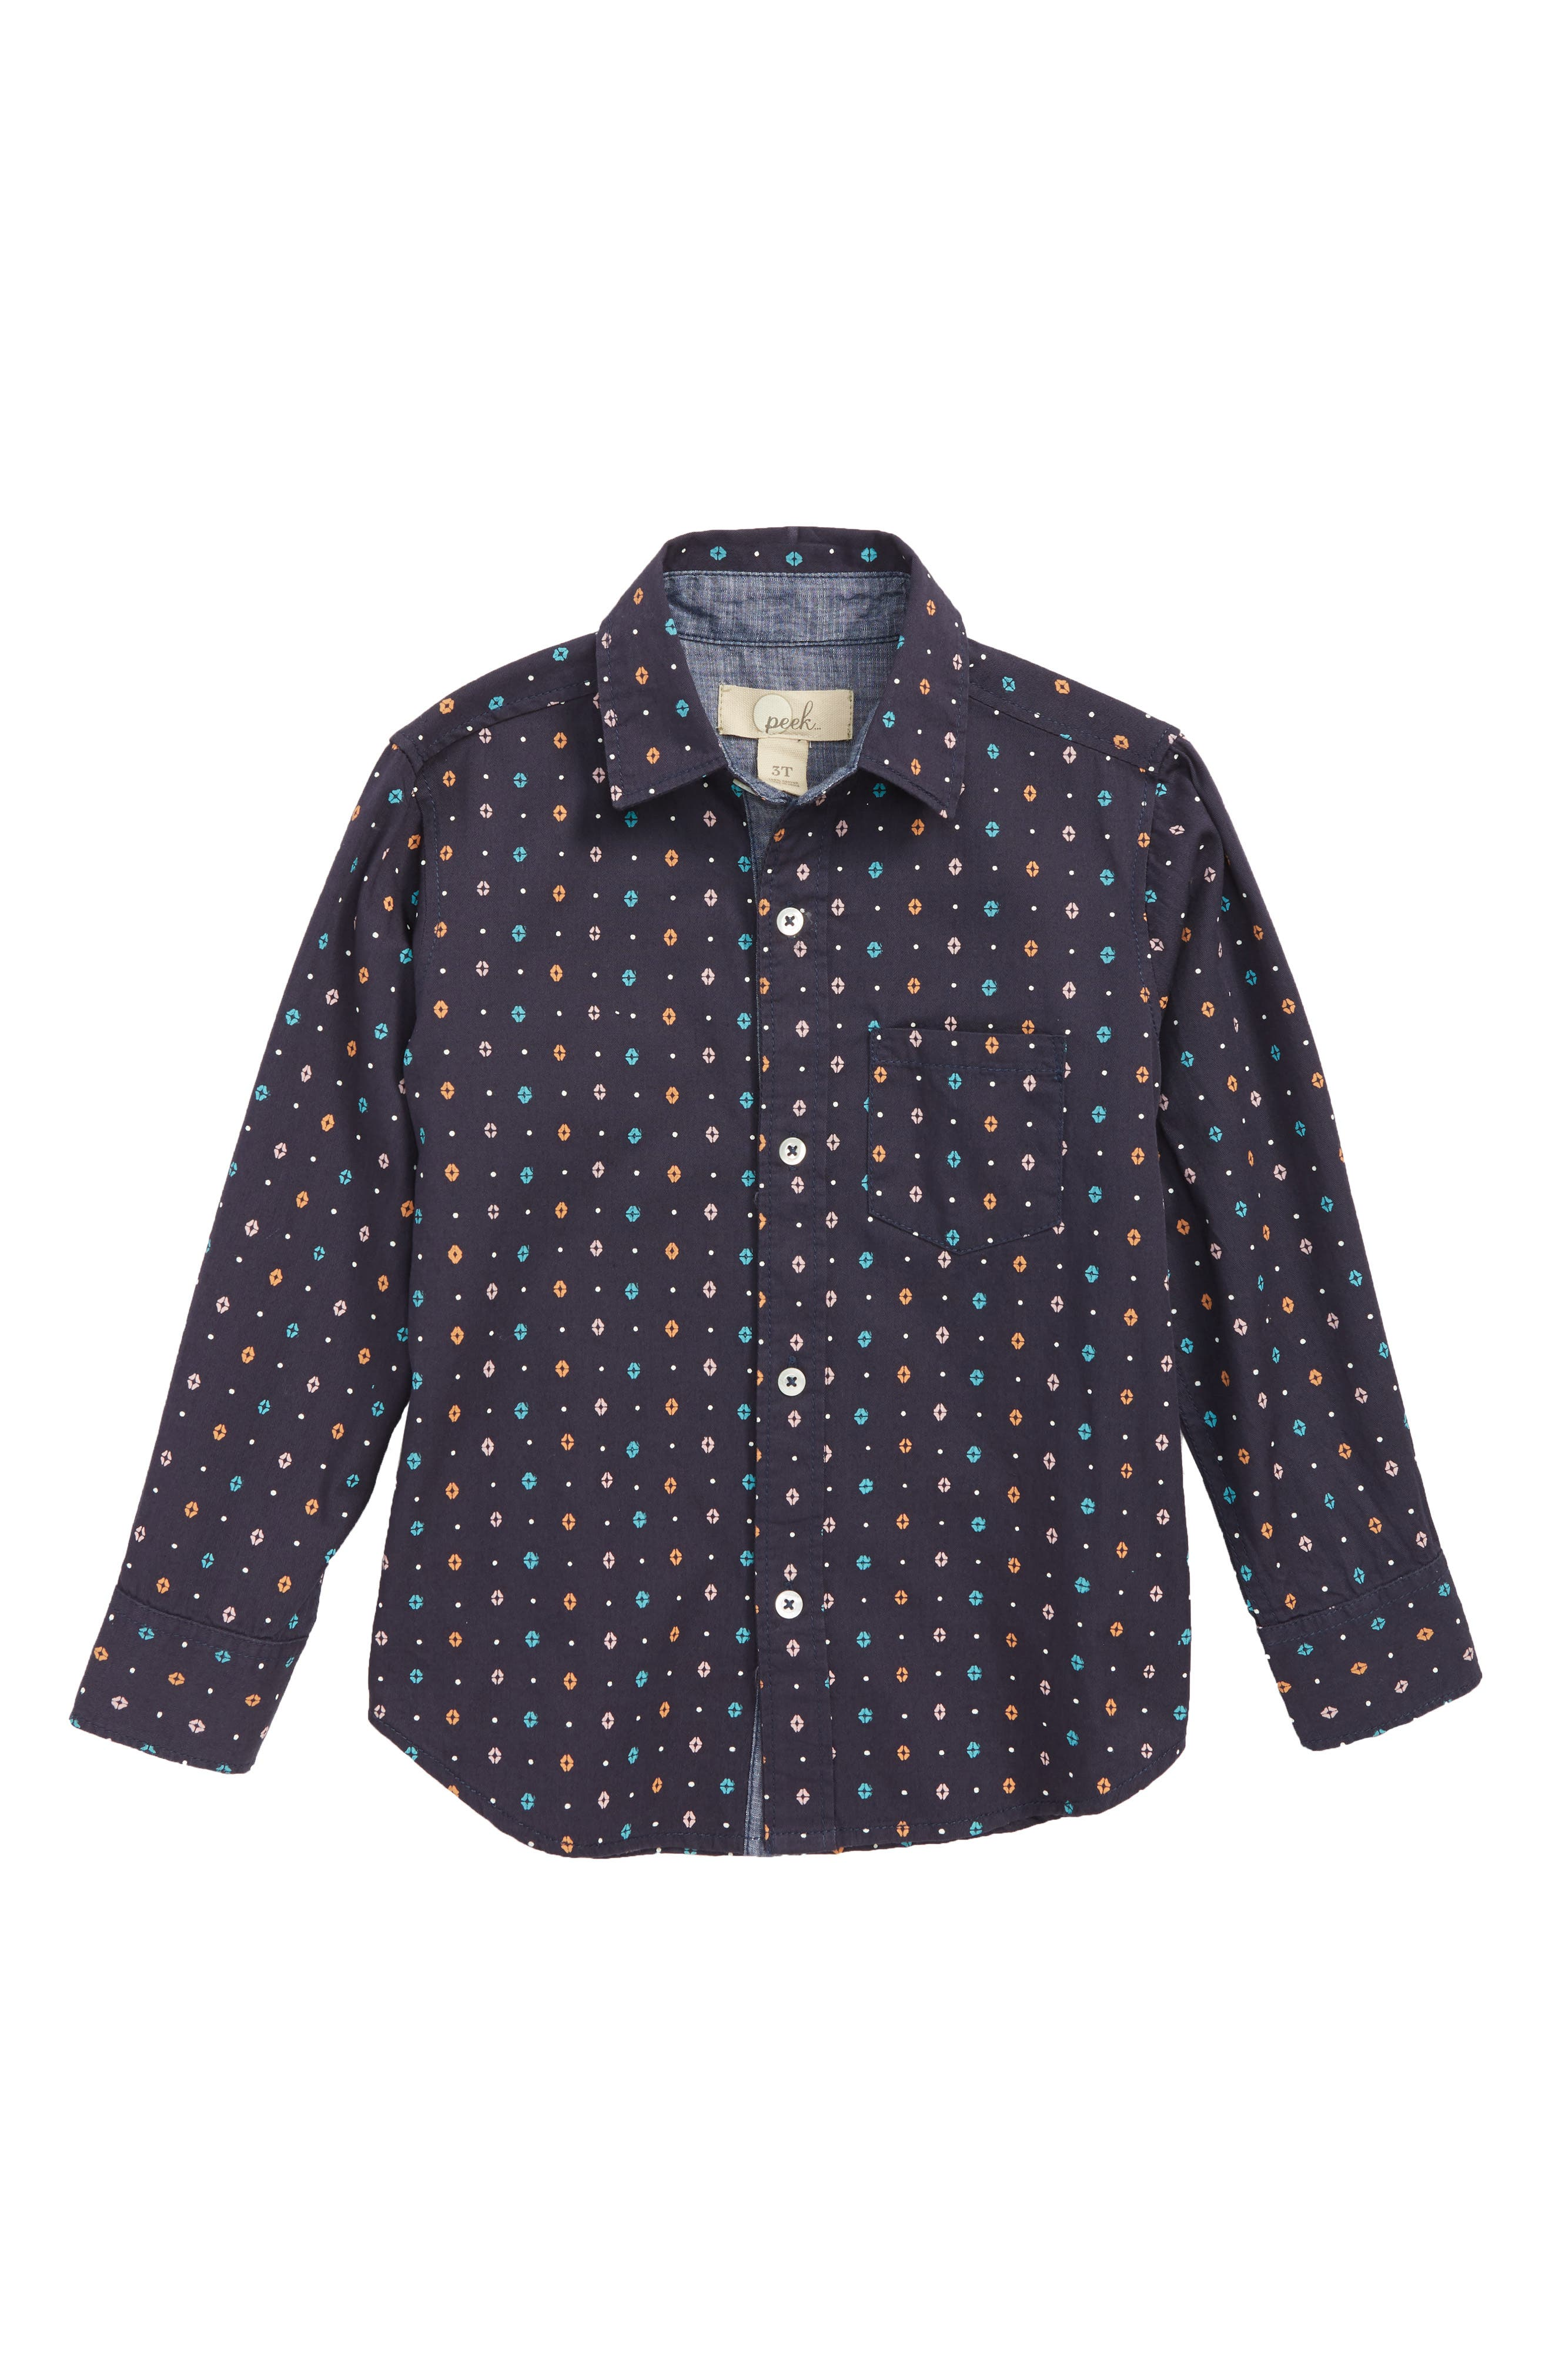 Oliver Print Woven Shirt,                         Main,                         color, 410